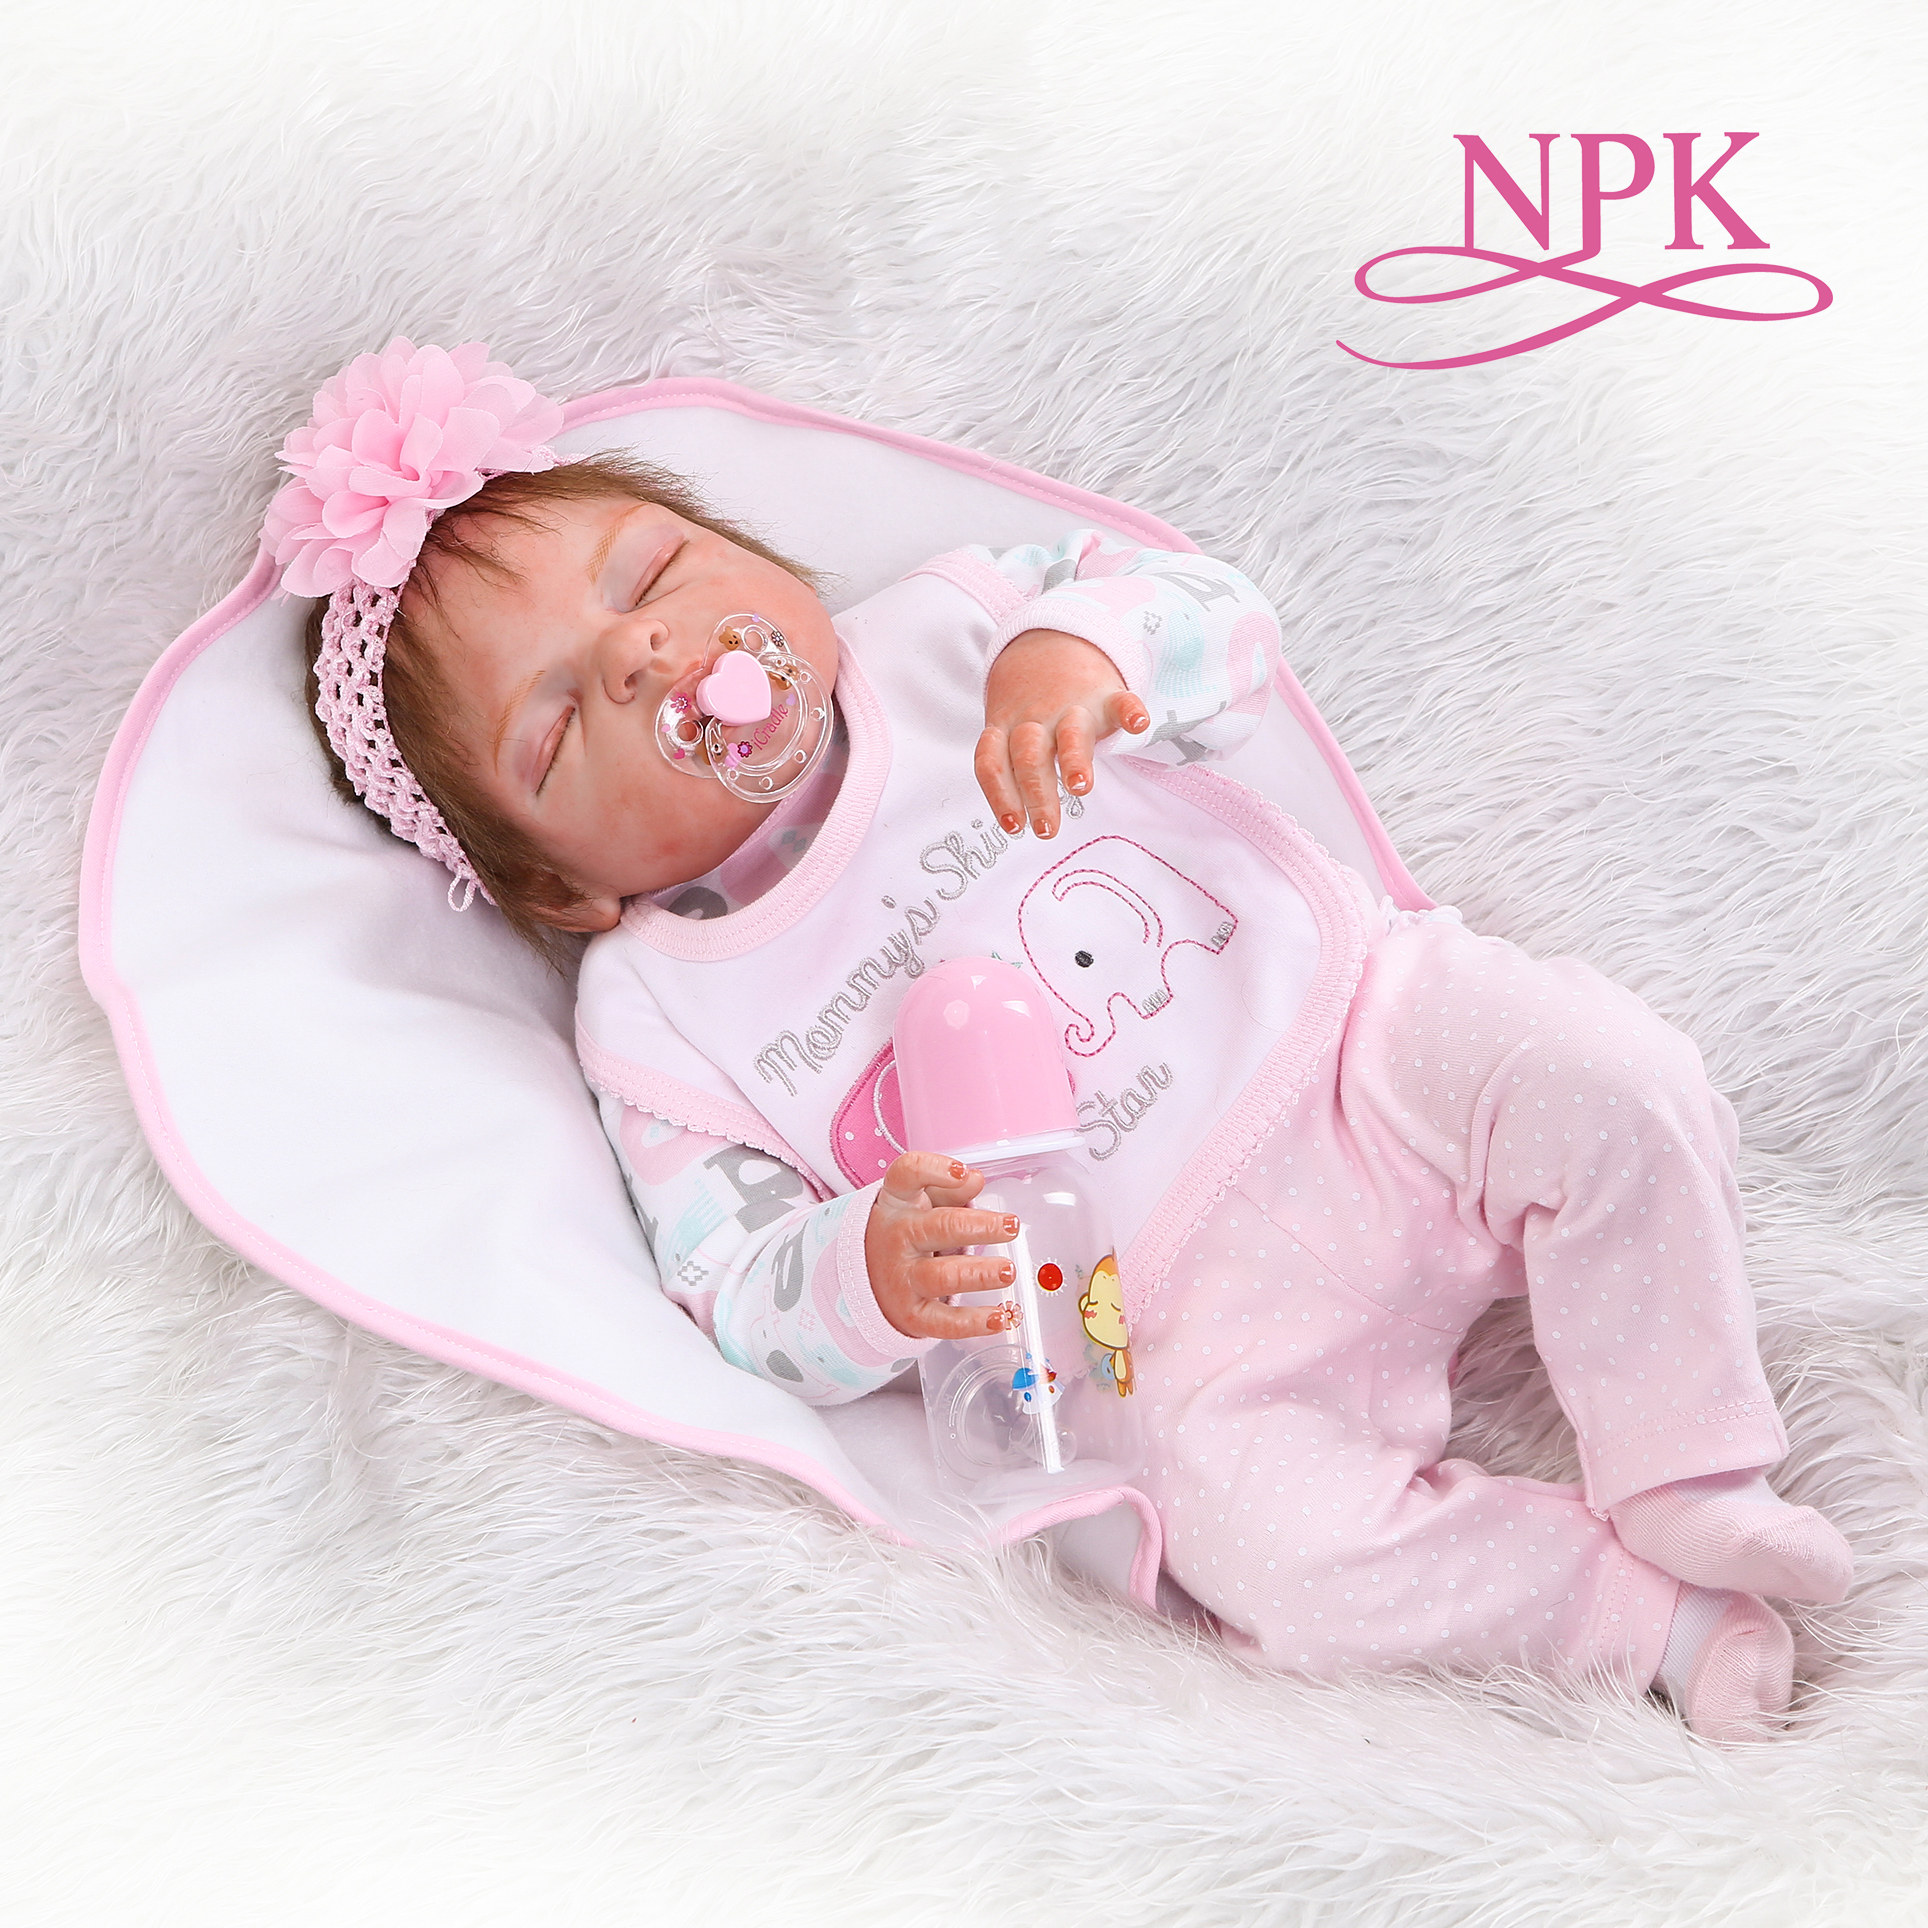 48CM bebe realistic reborn premie baby doll hand detailed painting pinky look full body silicone Anatomically Correct-in Dolls from Toys & Hobbies